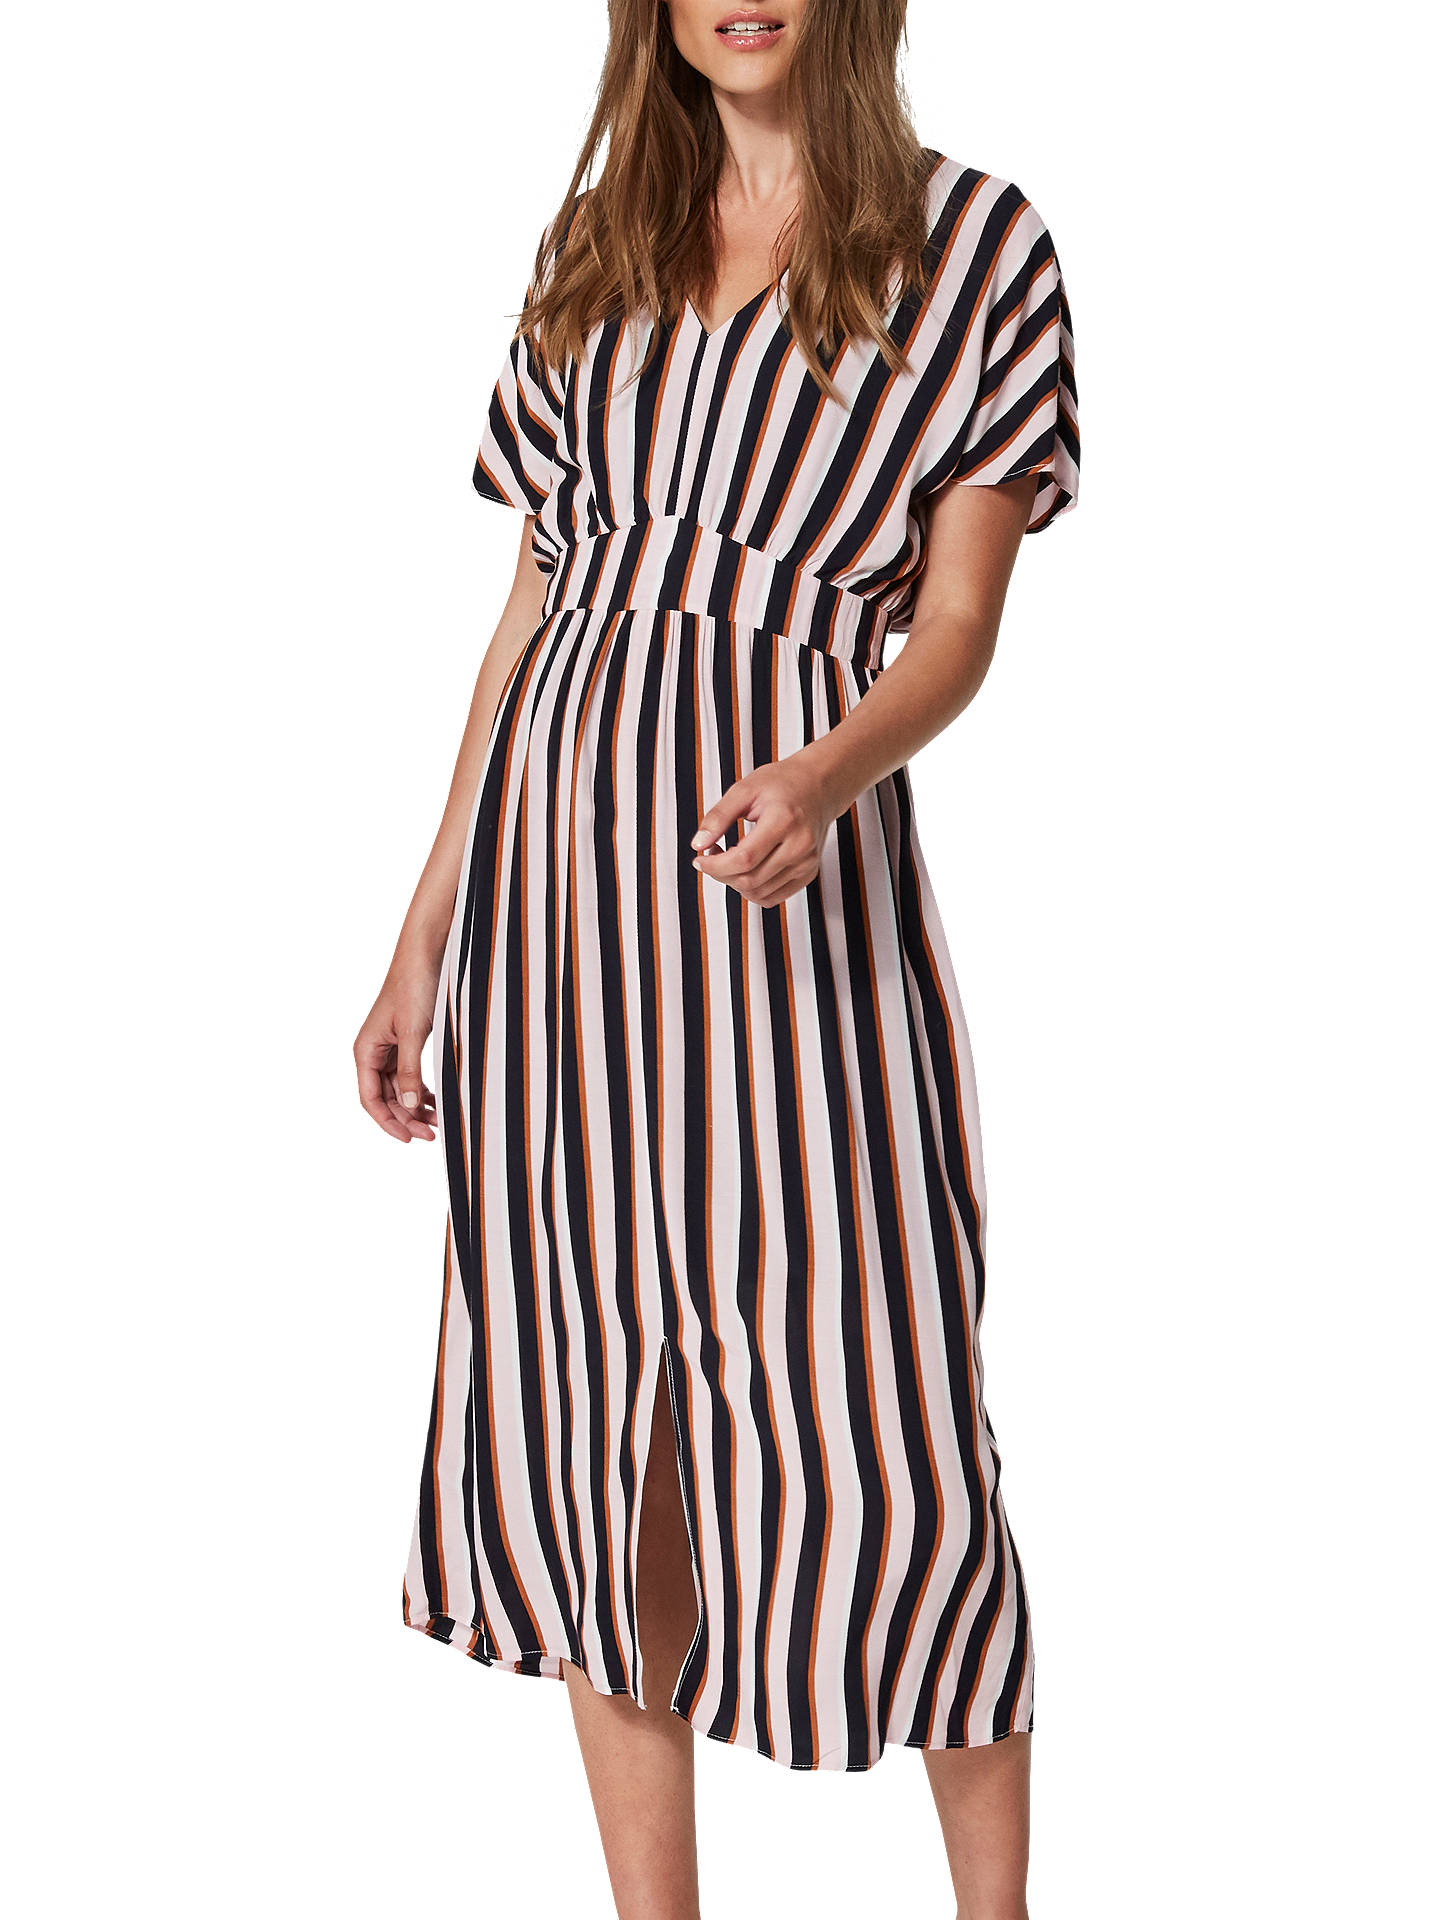 BuySelected Femme Tiana Stripe Dress, Pink Nectar, 8 Online at johnlewis.com